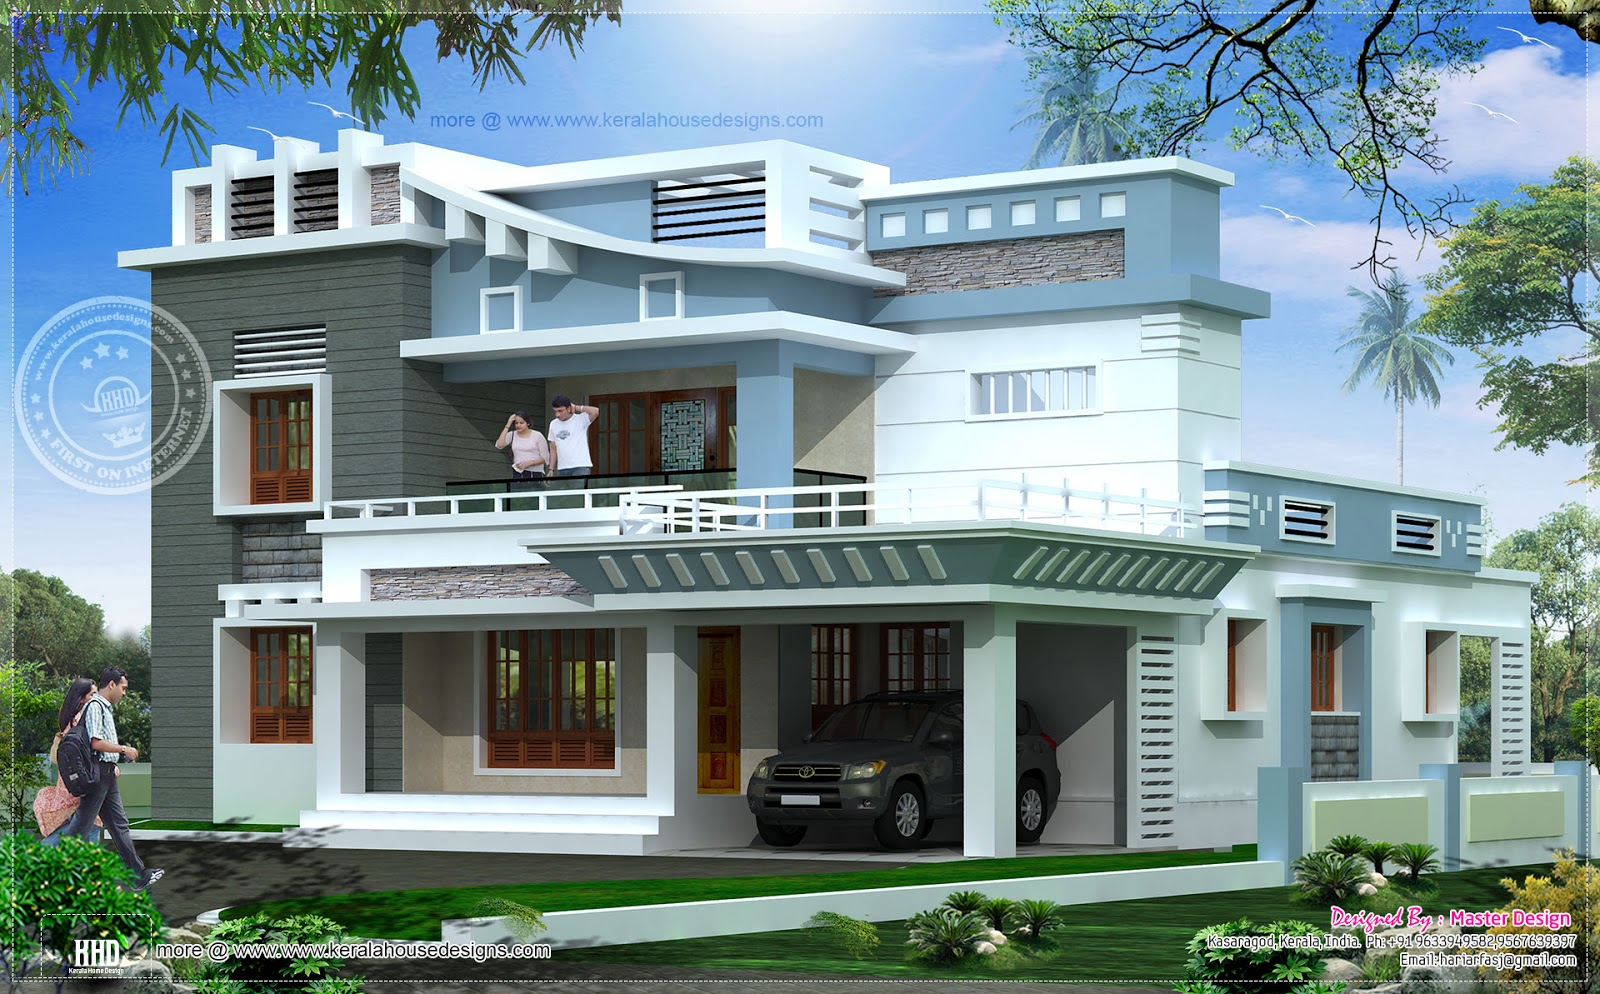 Exterior House Elevation http://www.keralahousedesigns.com/2013/05/2547-sq-ft-home-exterior.html